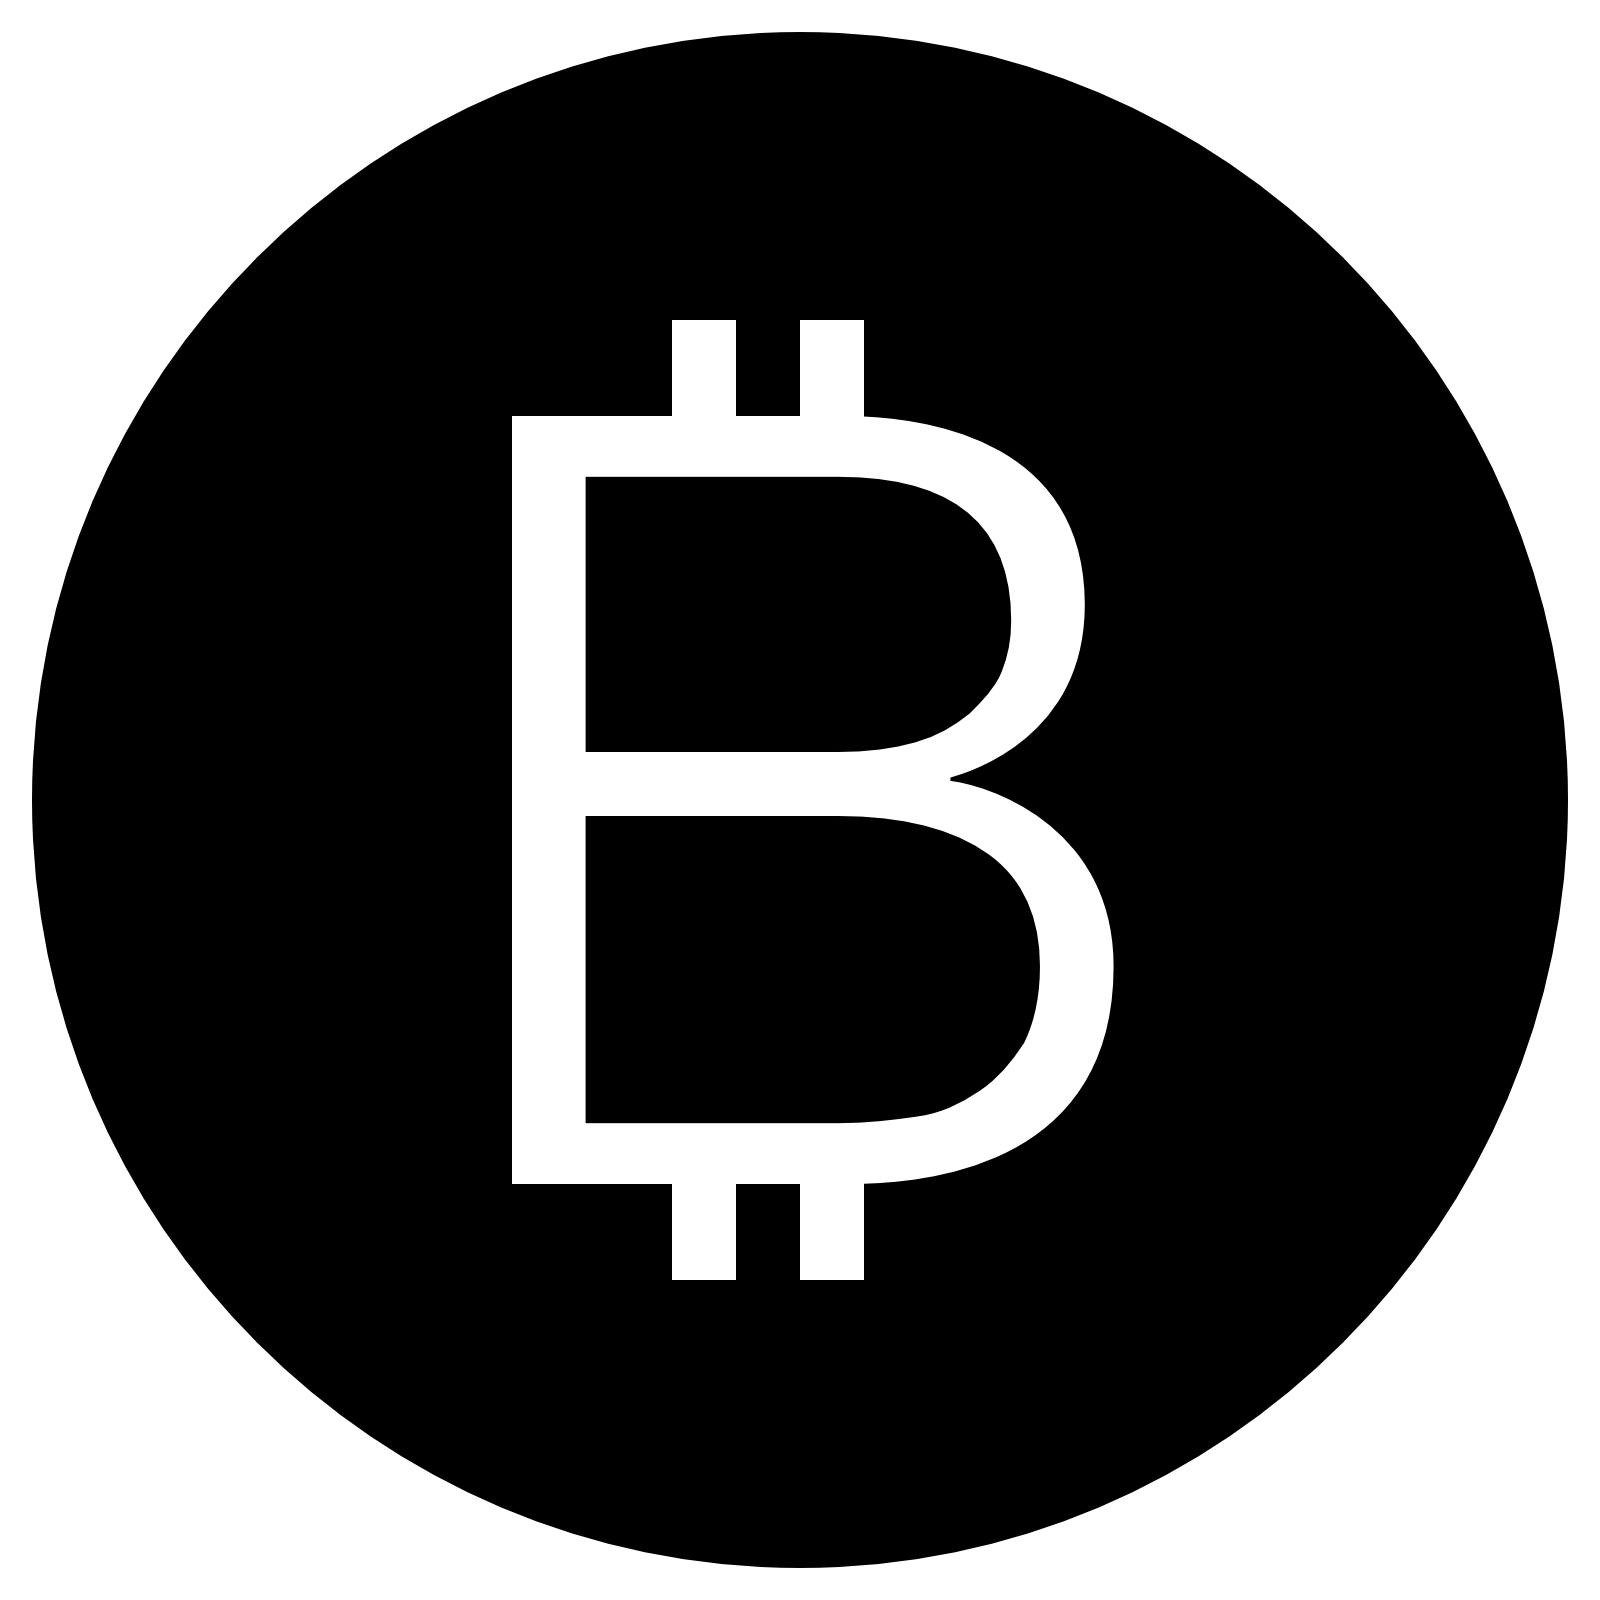 Bitcoin Shopping Icons image #42932